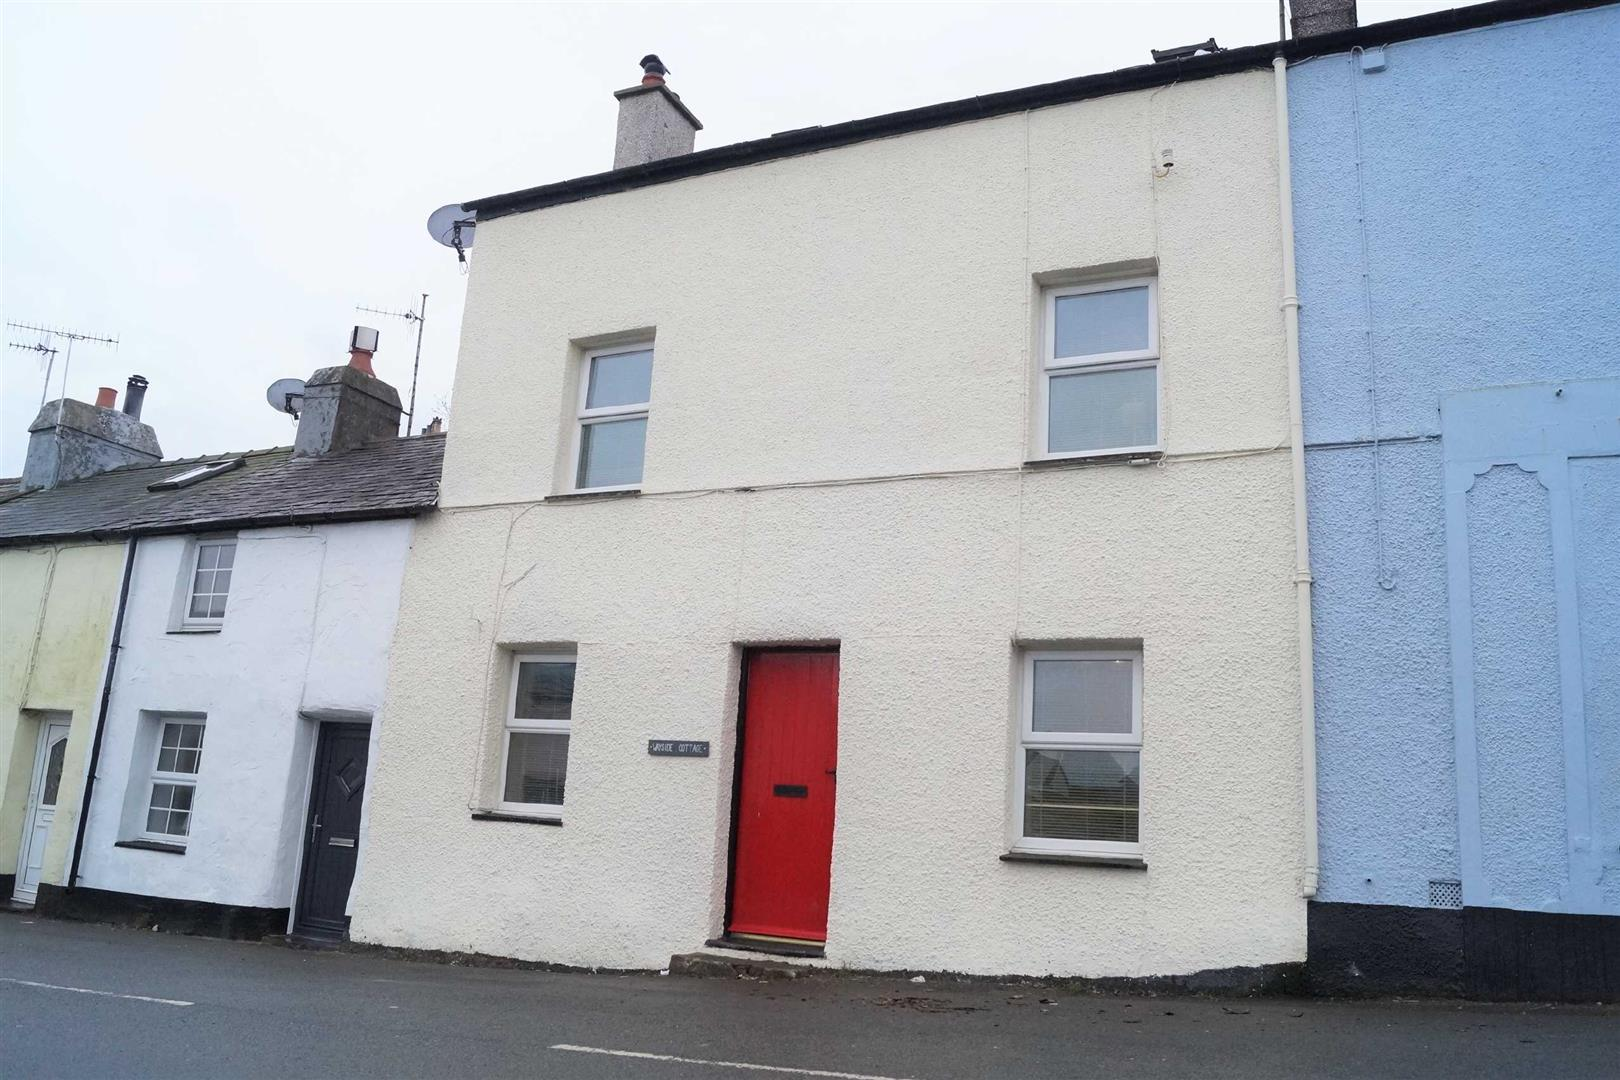 Llanbedrog - £136,500/Realistic offers considered